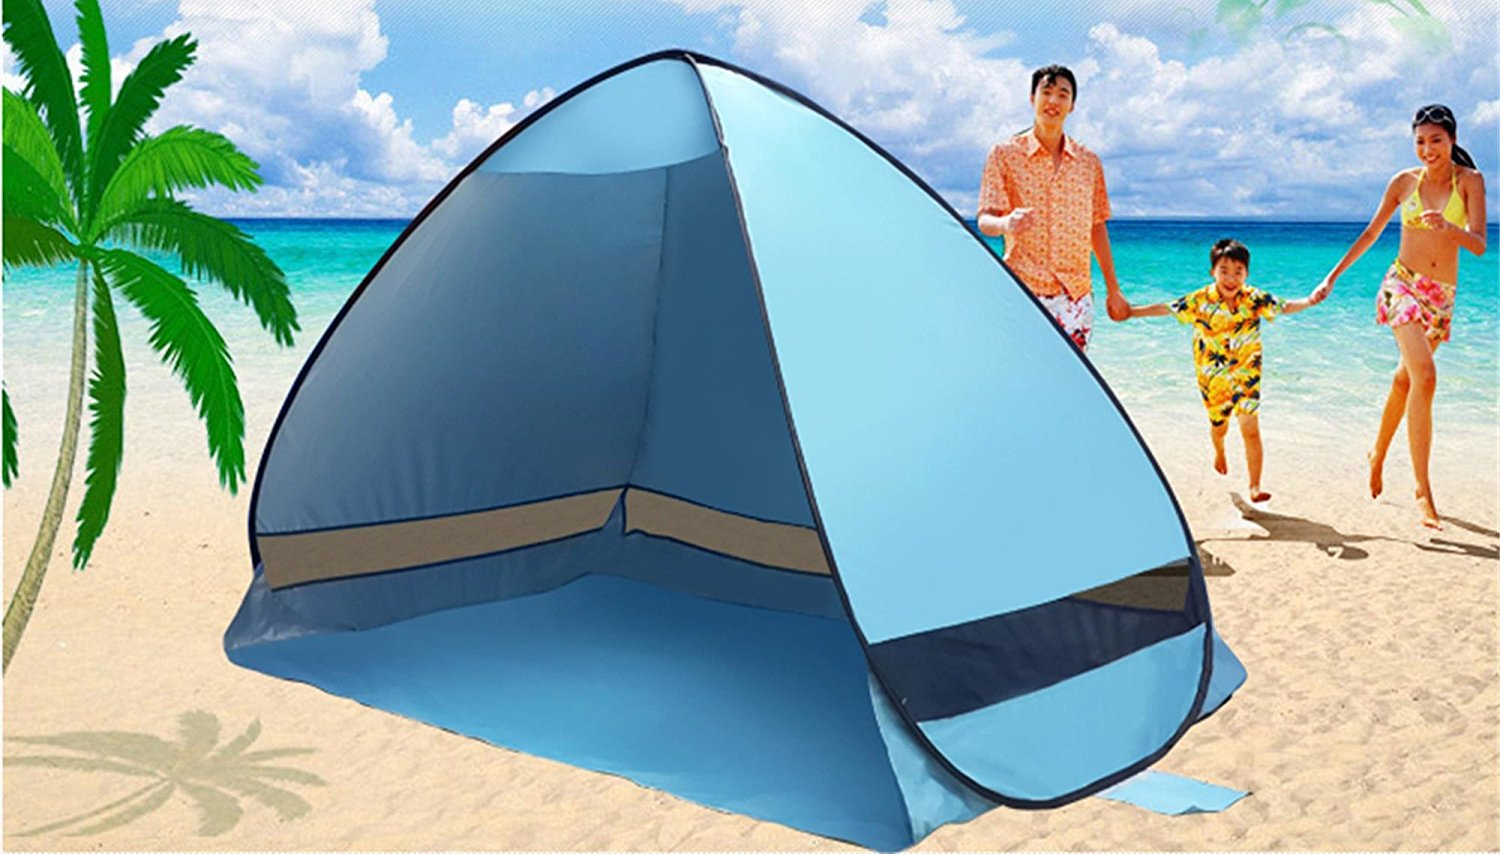 Outdoor 2-3 Persons Sun Shelter, Portable Pop Up Instant Cabana Canopy Anti-UV Sun Shade for Camping Fishing Picnic... by